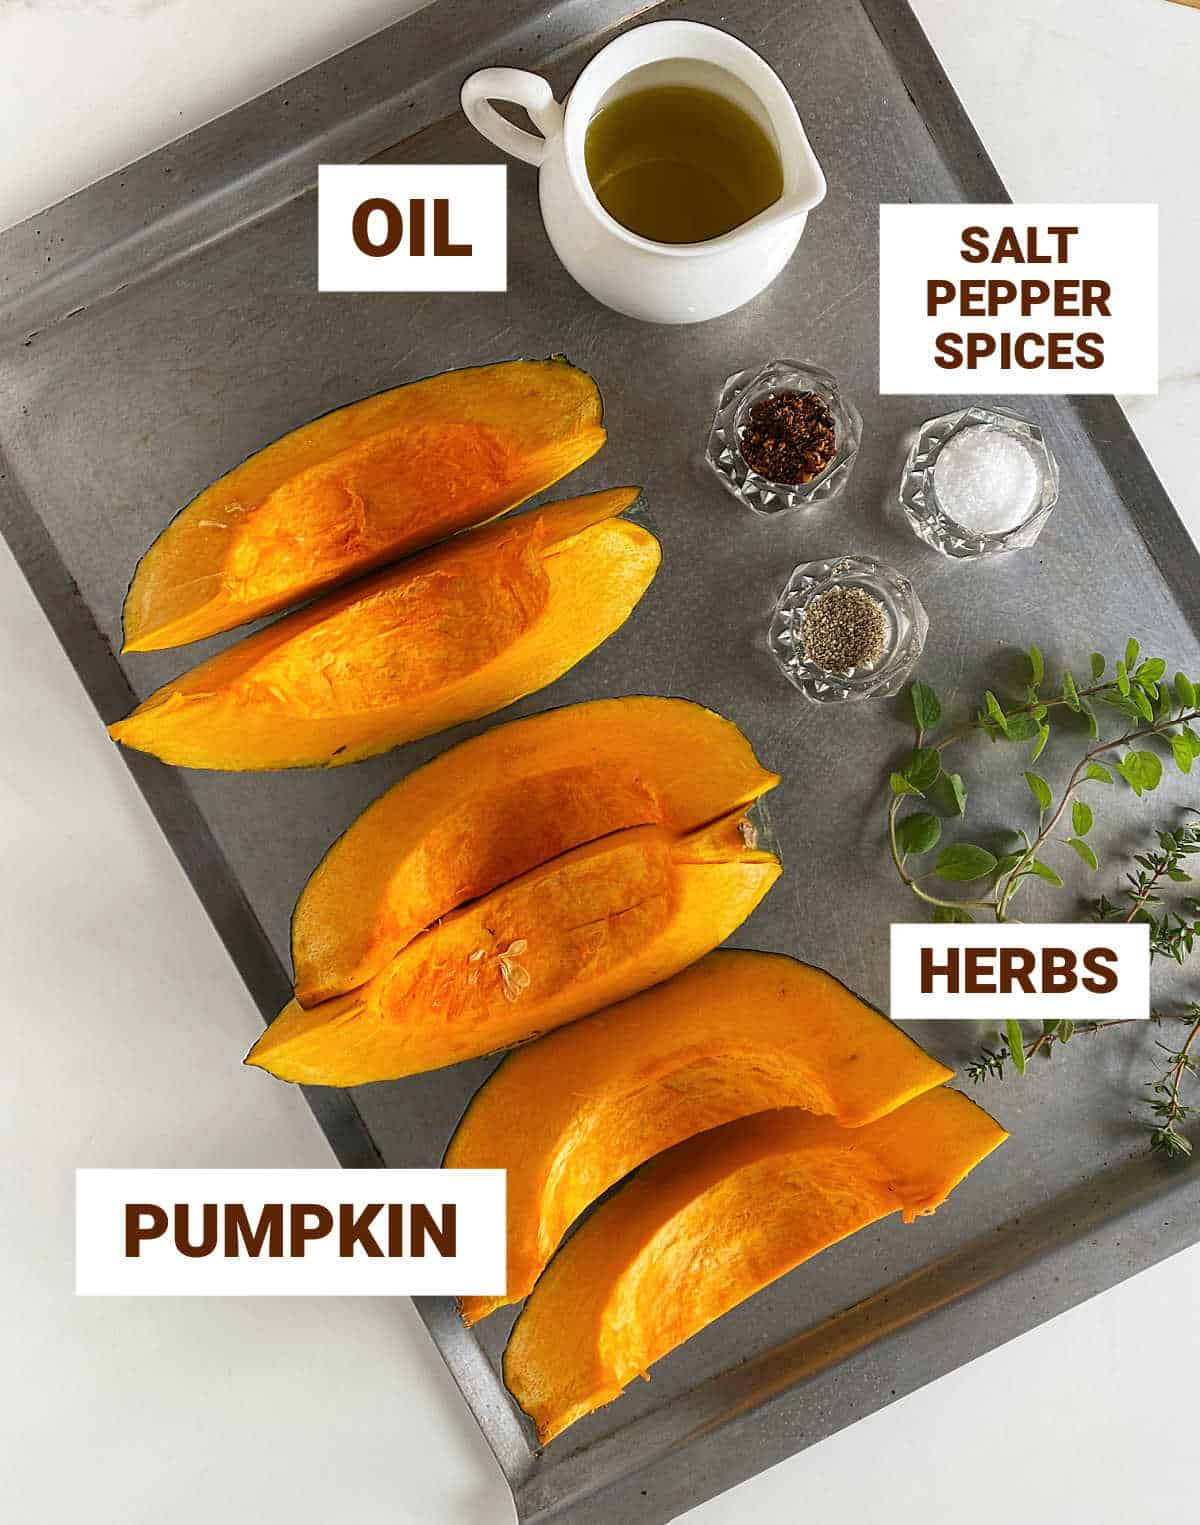 Metal baking sheet with pumpkin wedges, spices, jar with oil, herbs